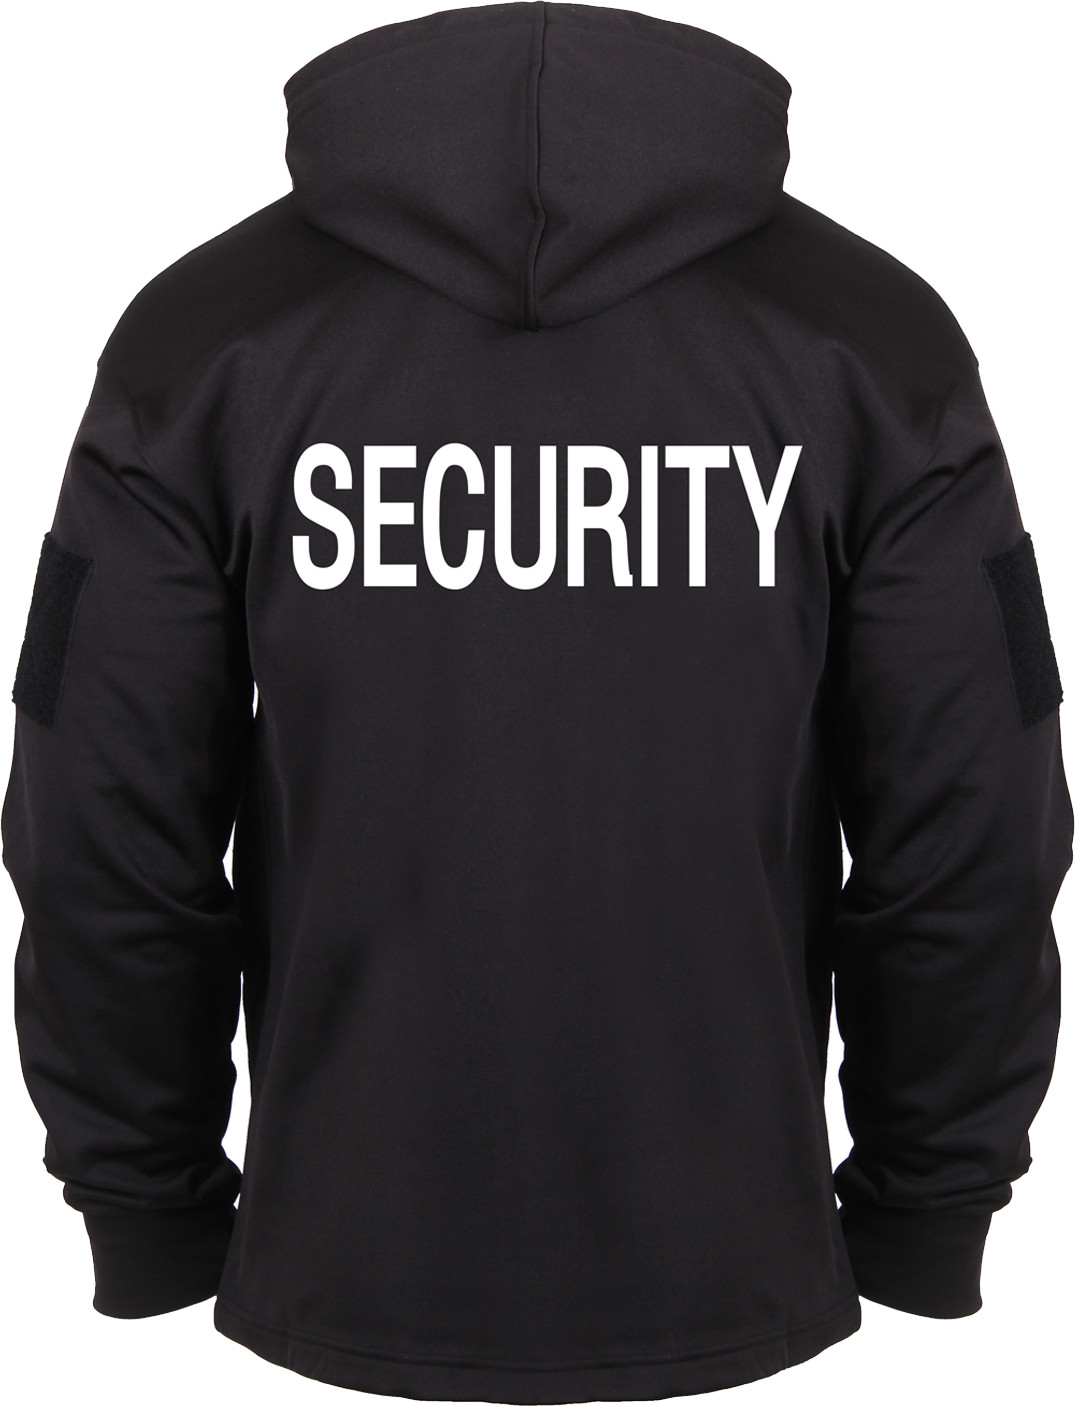 Black Double Sided Security Concealed Carry Tactical Hooded Sweatshirt acd63c339